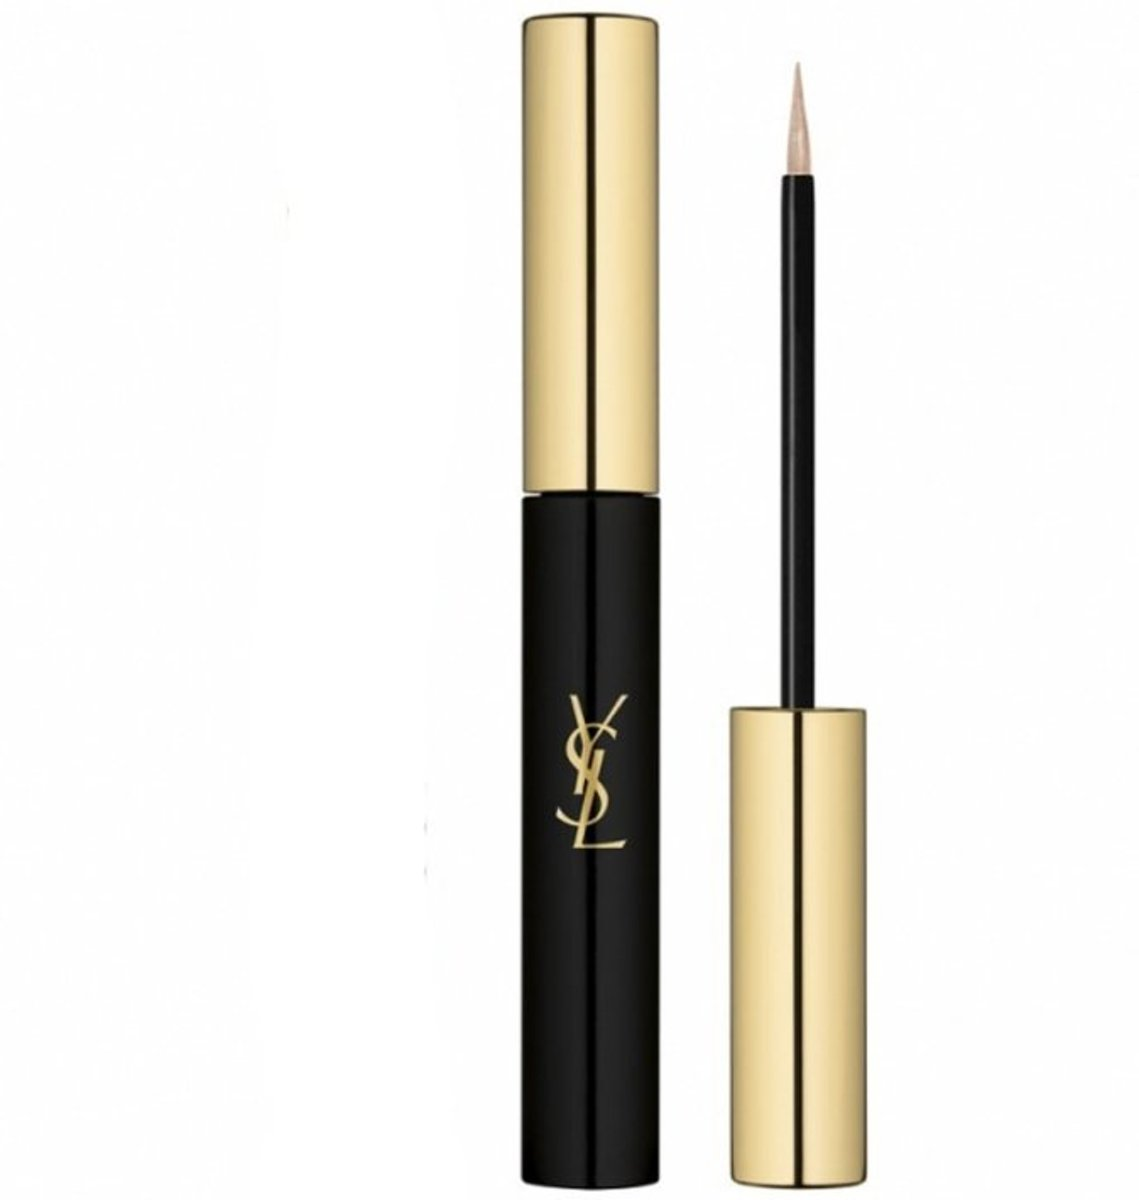 Yves Saint Laurent Couture Eyeliner 3 ml - 1 - Black Matte